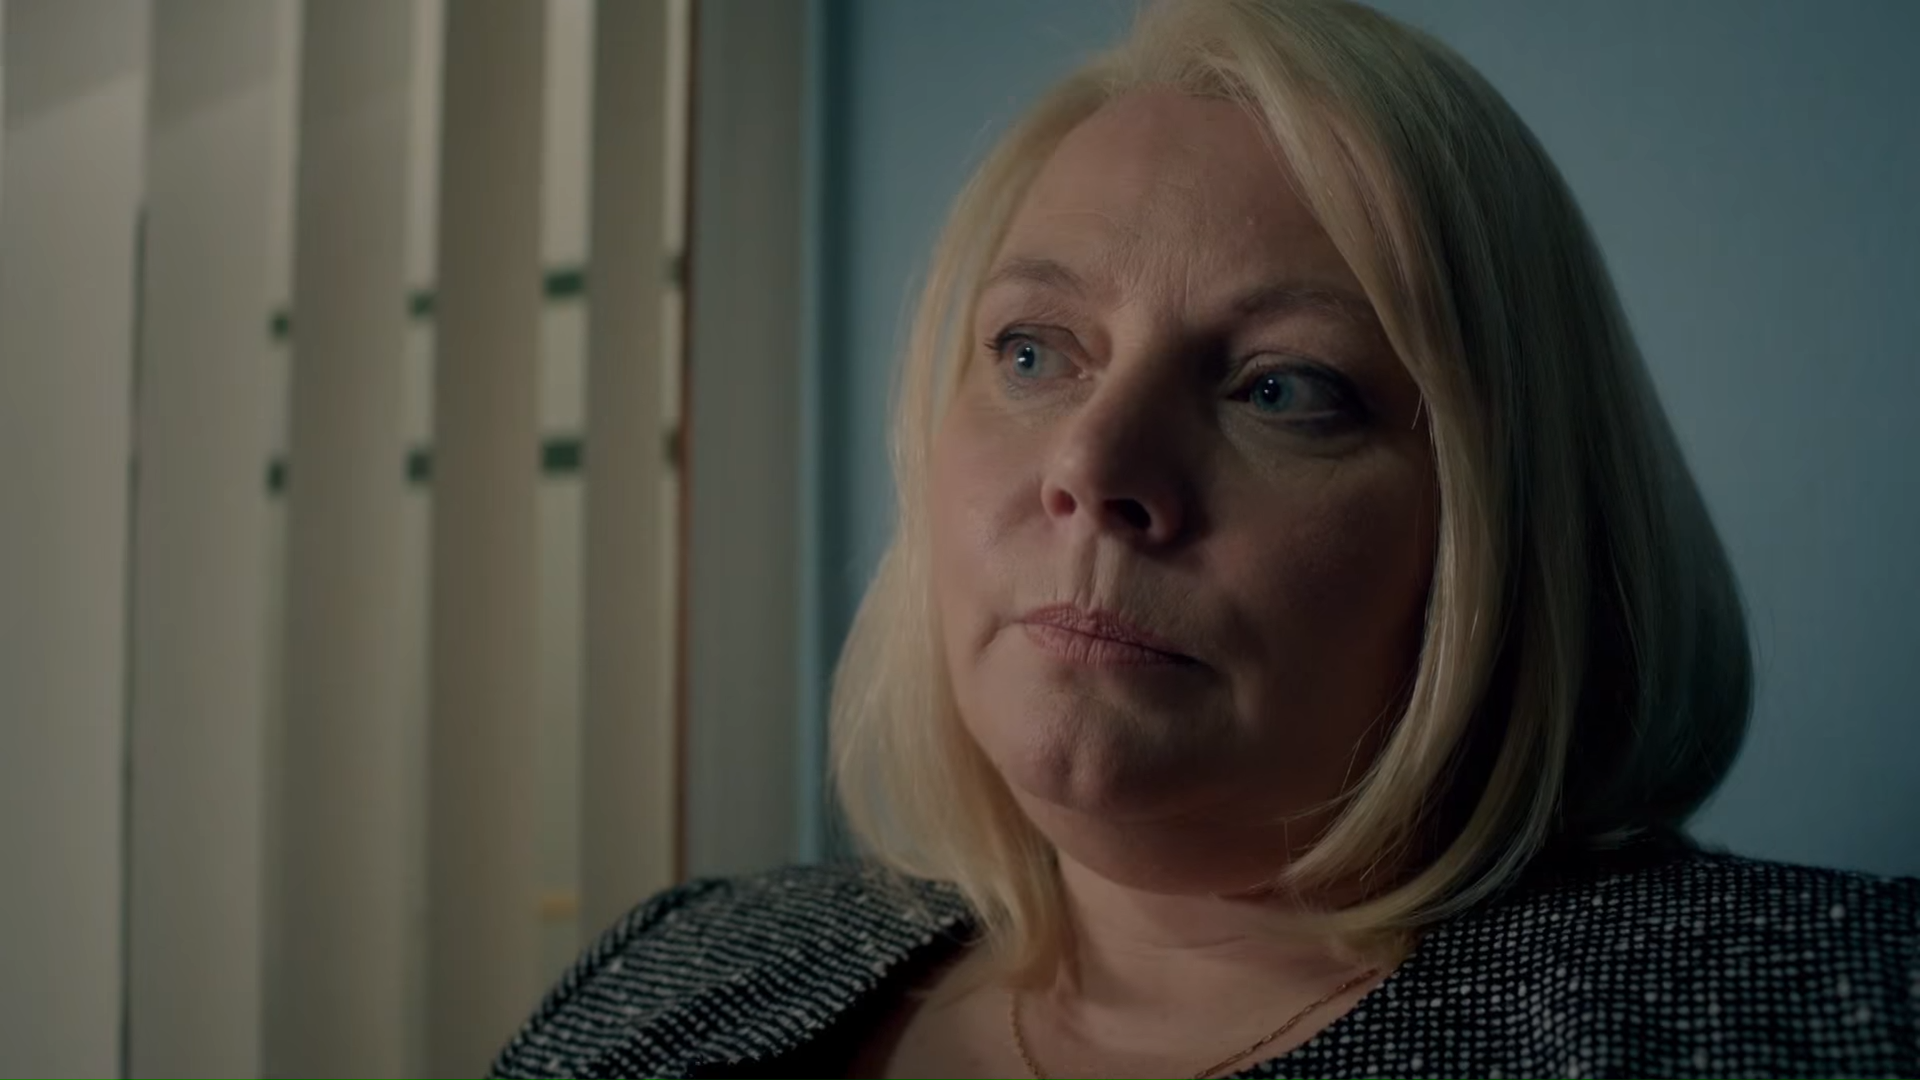 Joanna Scanlan Joins the Cast of 'Gentleman Jack' for Season 2